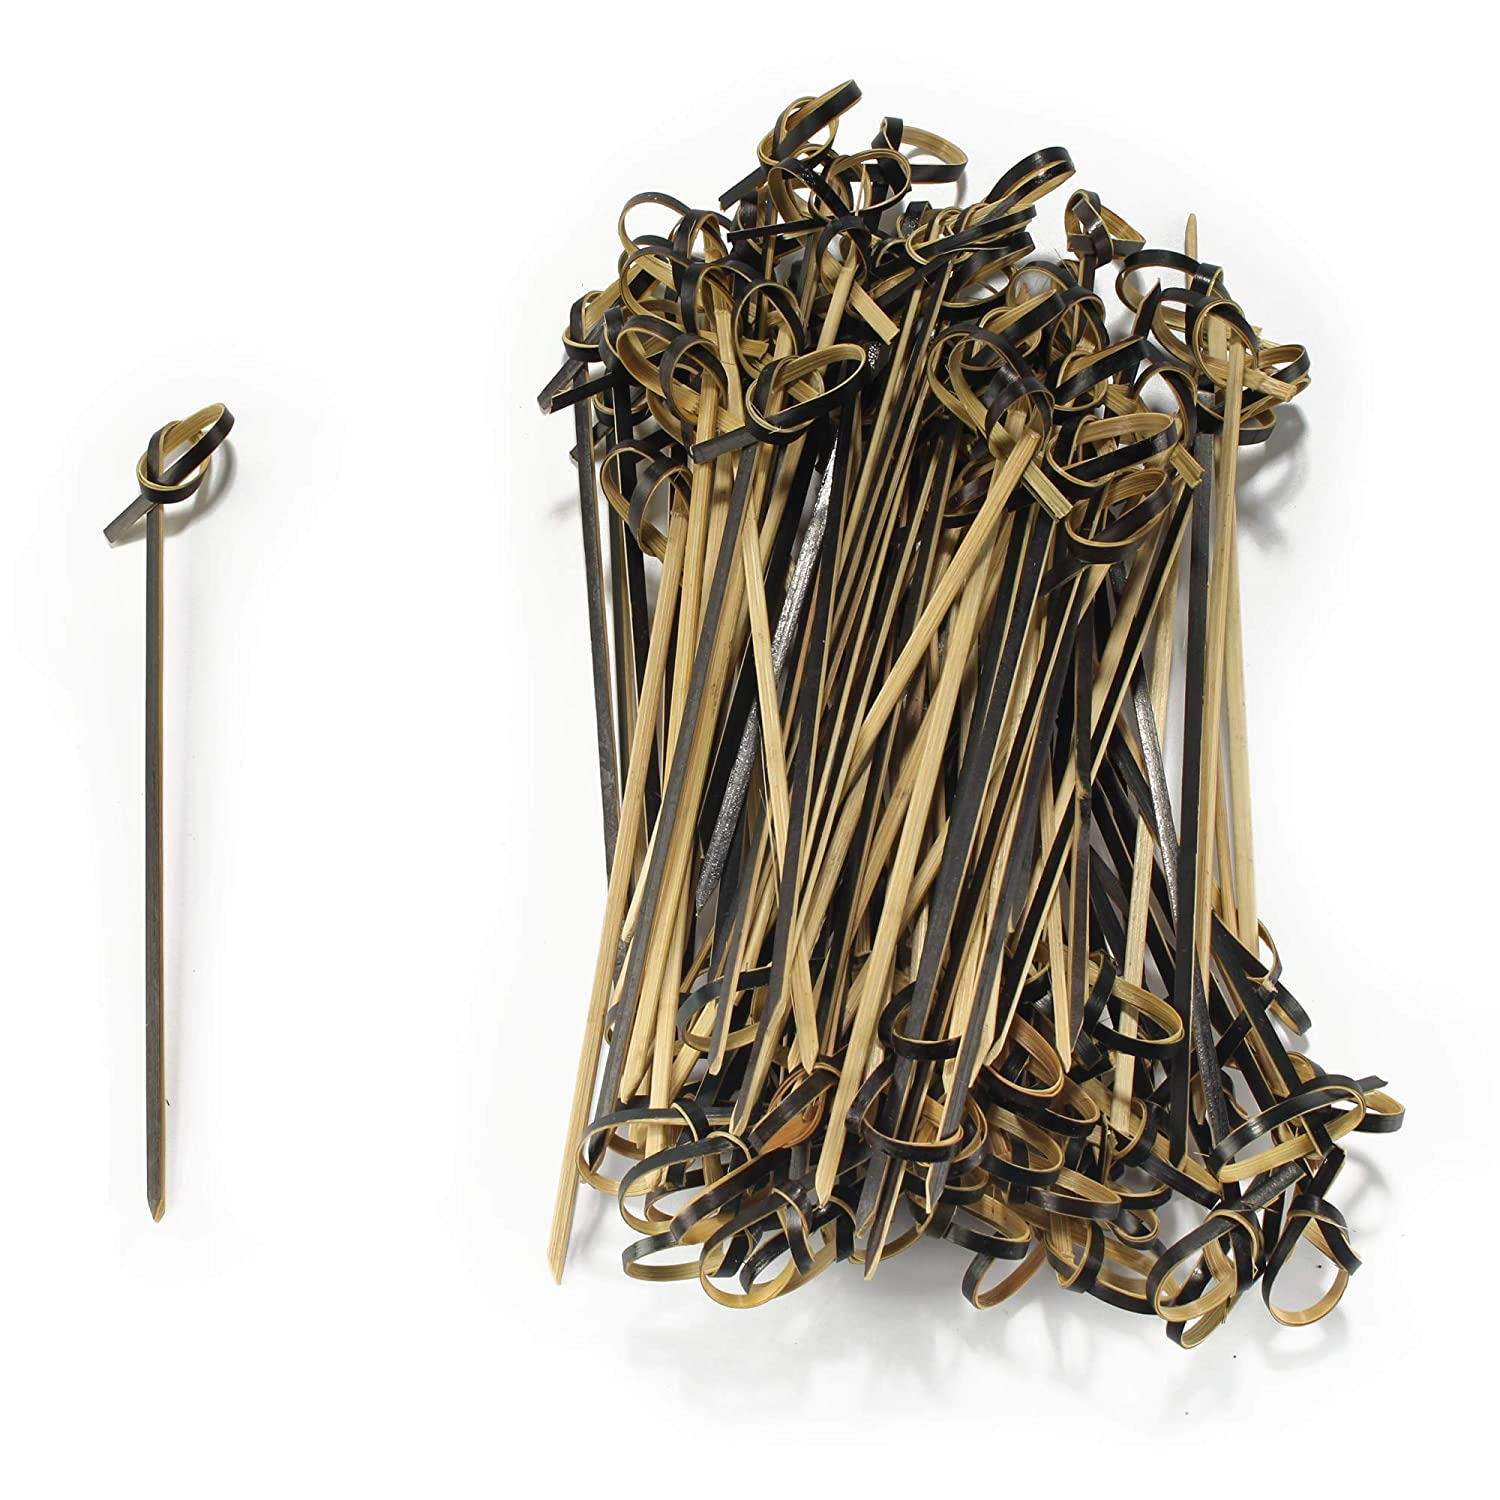 1000 Pieces 6937259167755a BambooMN 4.7 Bamboo Black Knotted Knot Skewers Picks for Cocktails and Hors Doeuvres Party Supplies